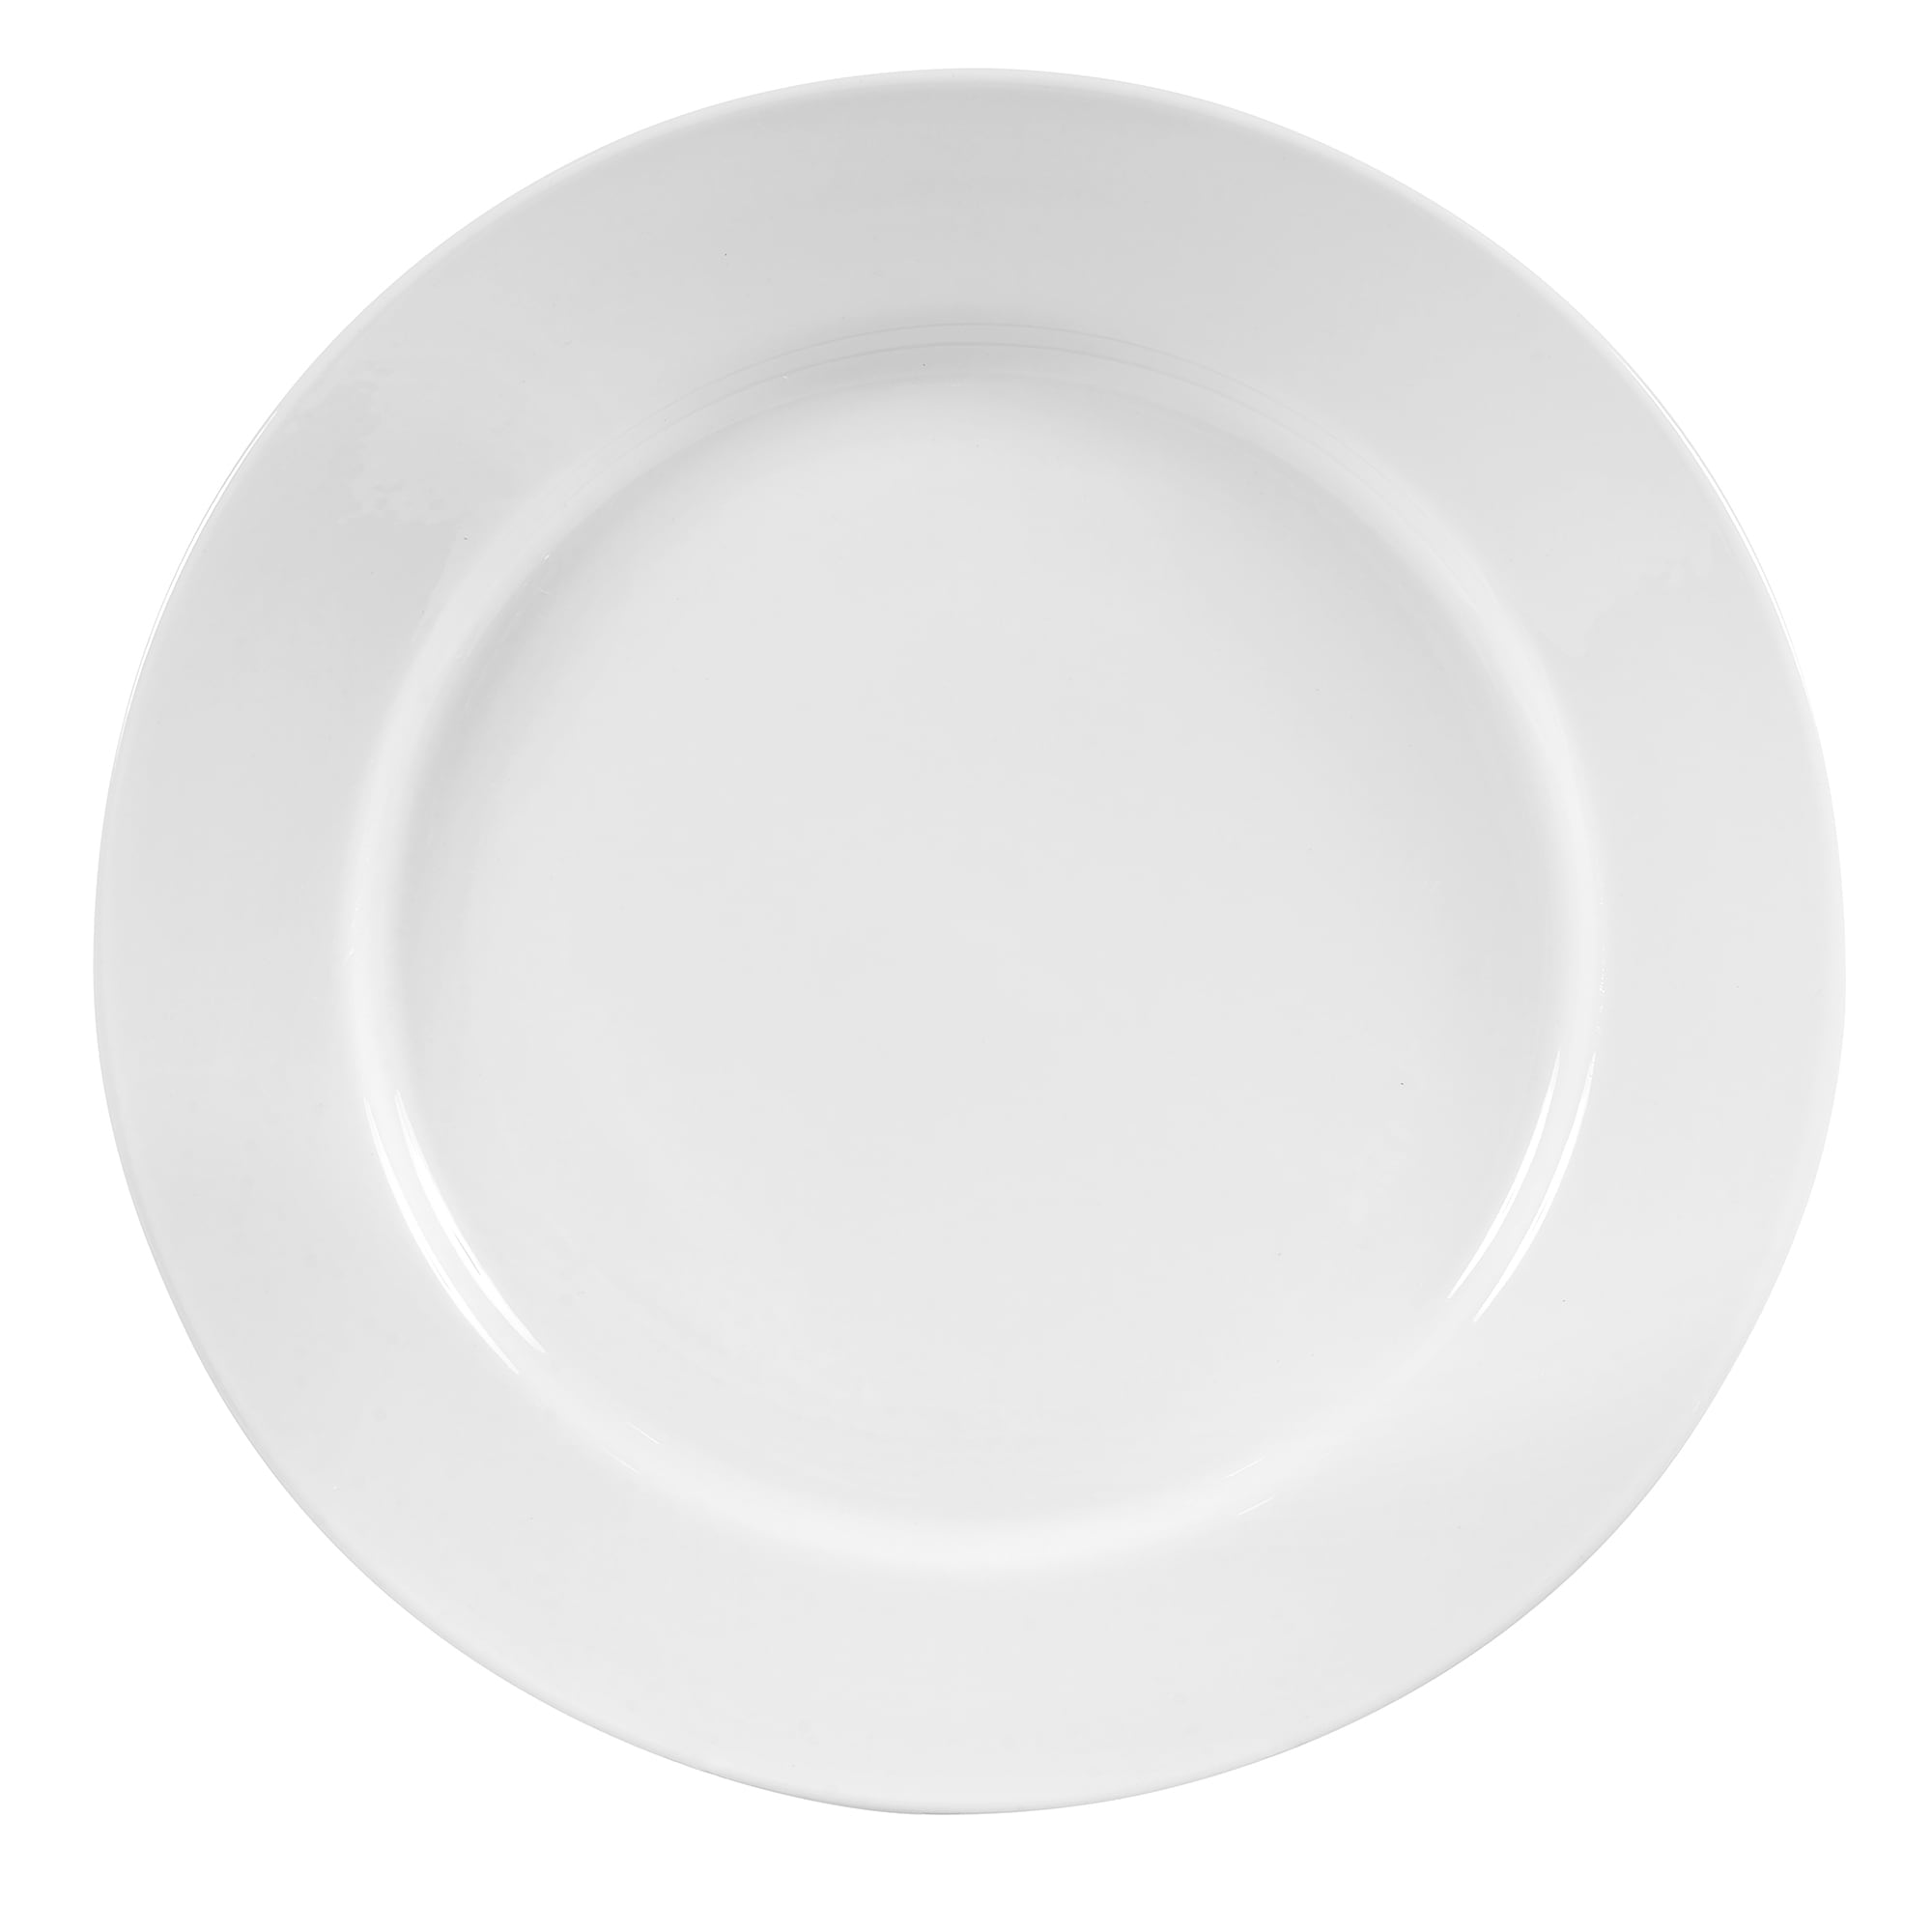 "World Tableware 840-440R-11 11"" Plate - Wide Rim, Rolled Edge, Porcelain, Bright White, Porcelana"